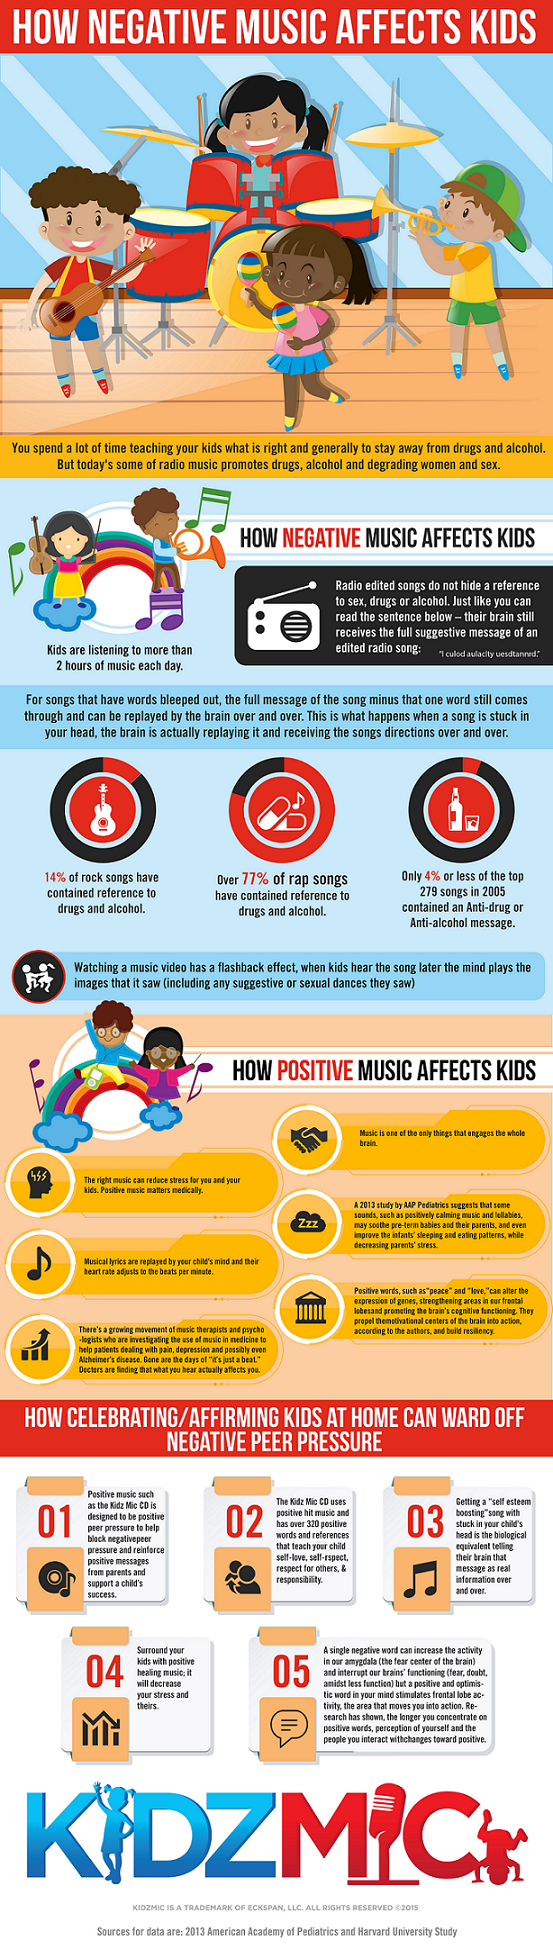 Science says music matters - listen wisely! :-)